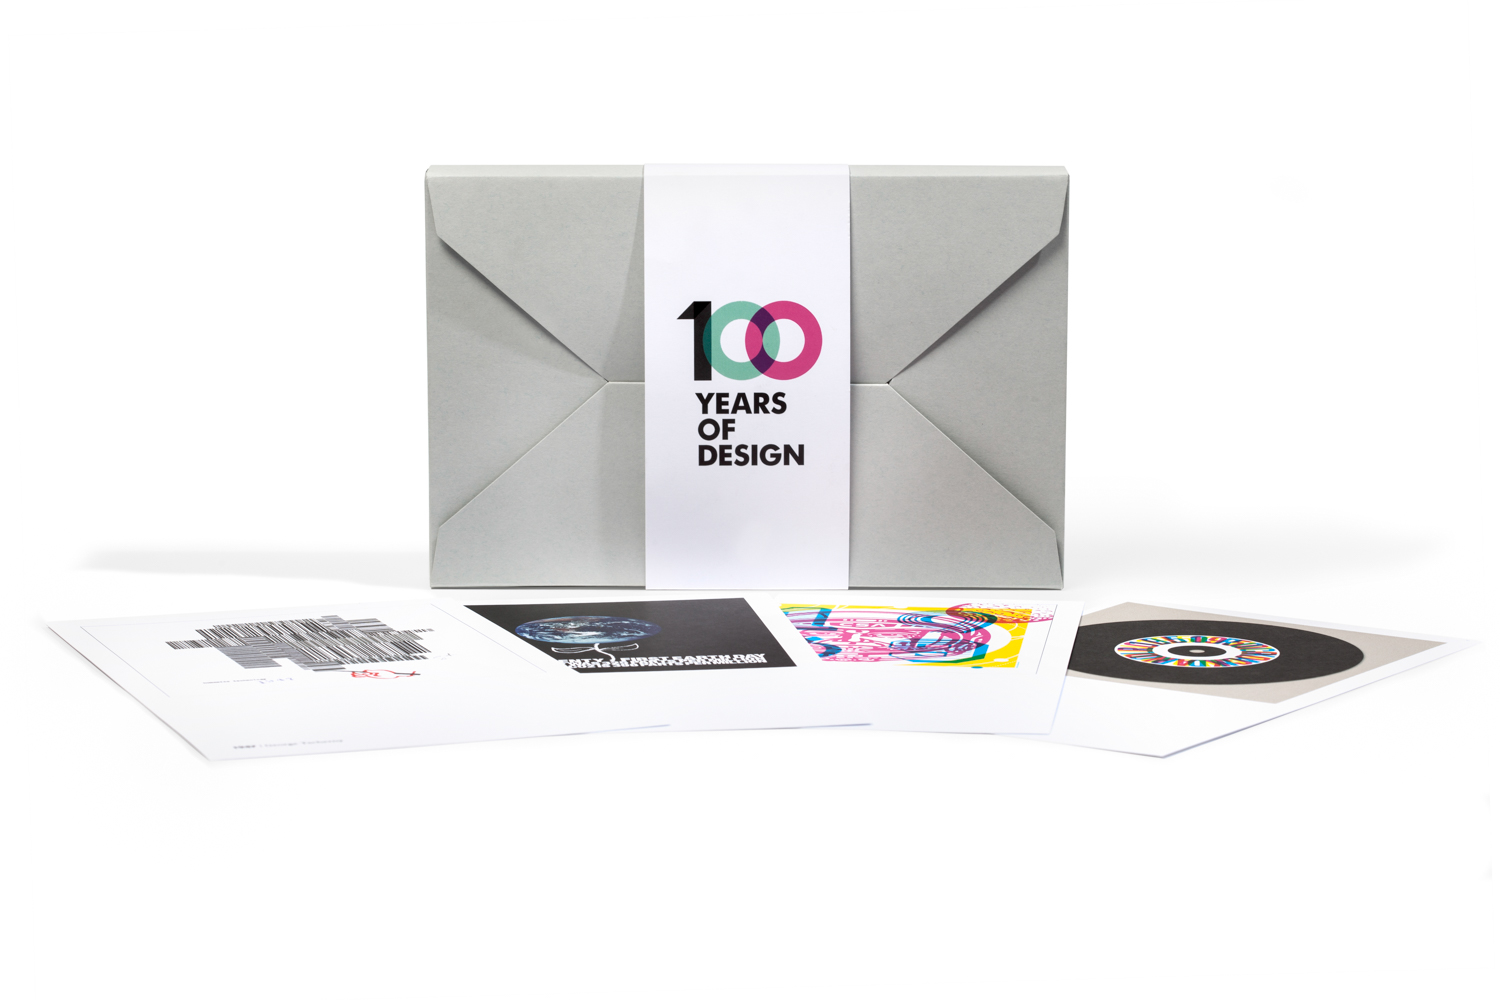 AIGA 100 years of design